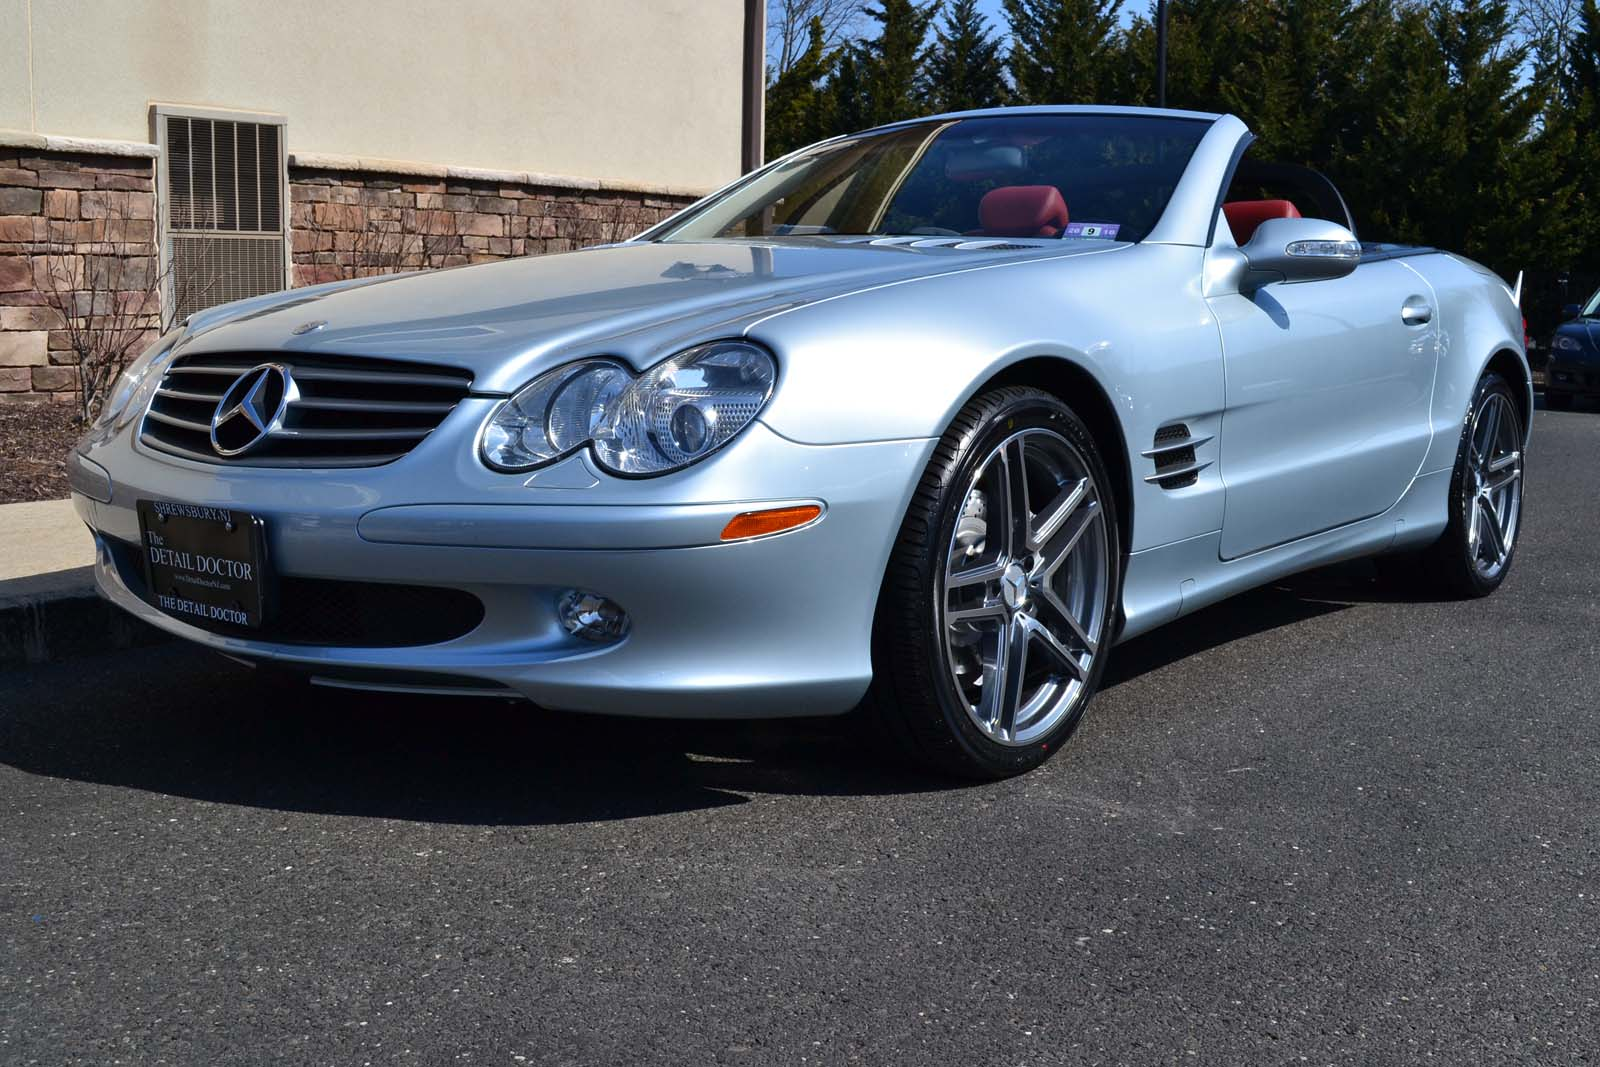 Mercedes Pre Owned >> 2003 Mercedes Benz SL 500R Pre-Owned